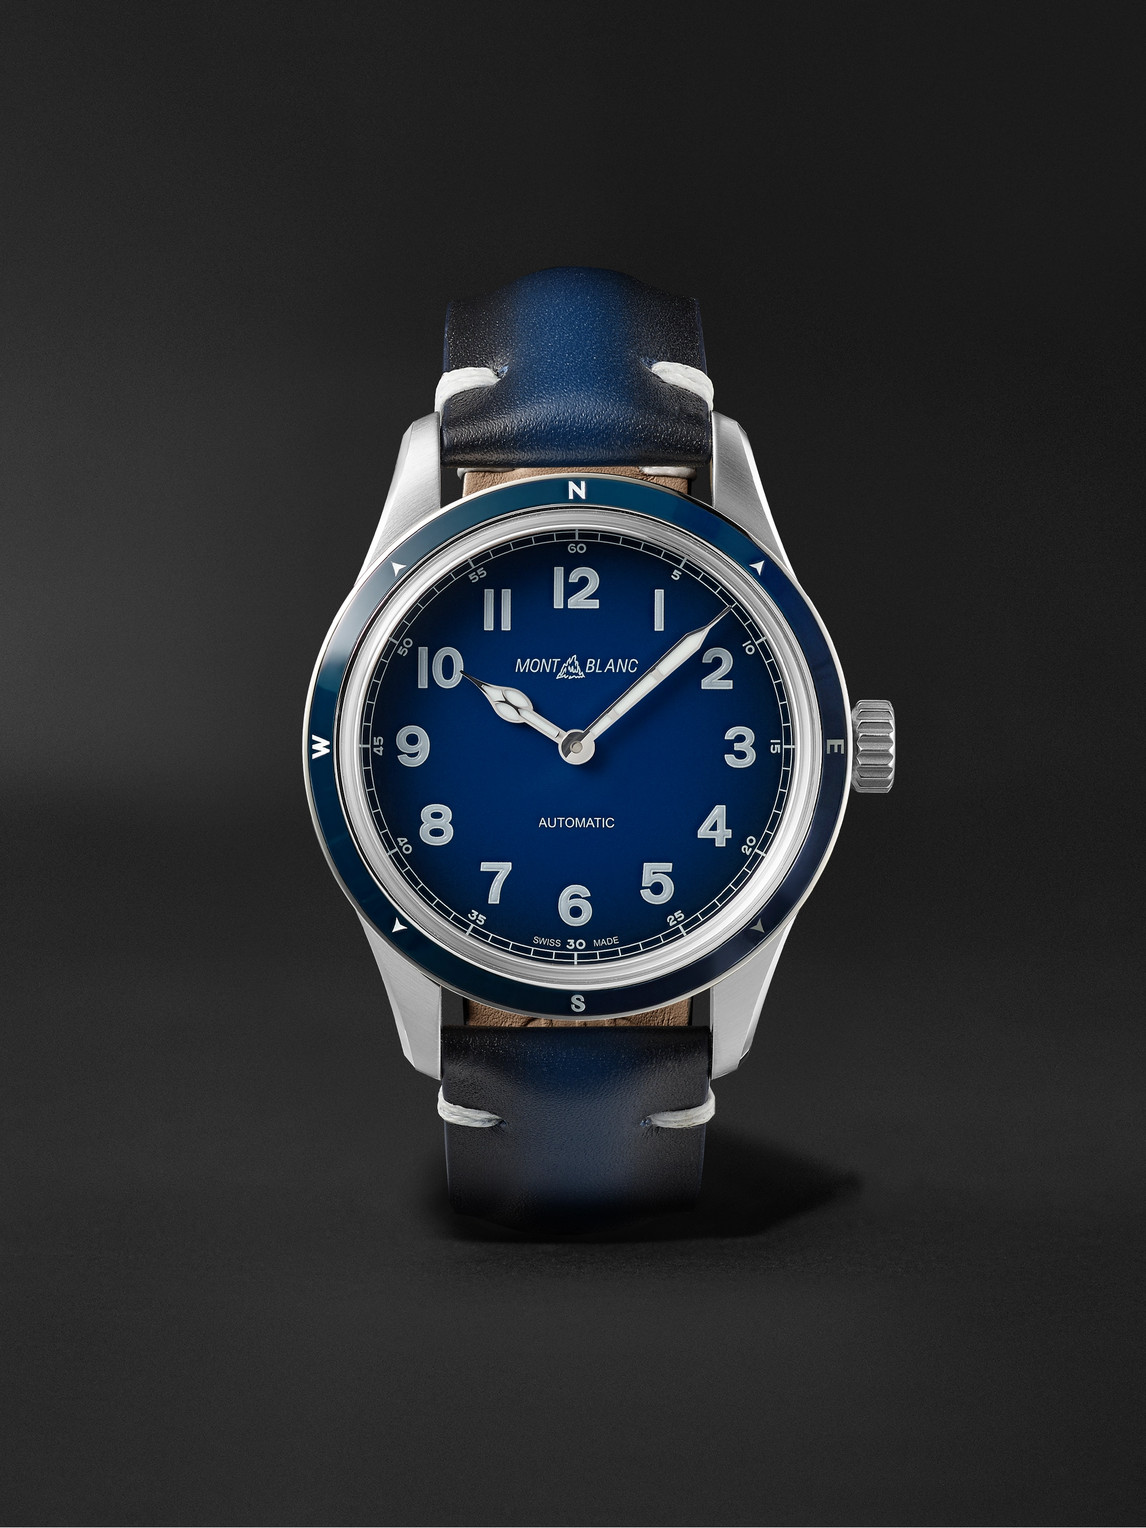 Montblanc 1858 Automatic 40mm Stainless Steel And Leather Watch, Ref. No. 126758 In Blue